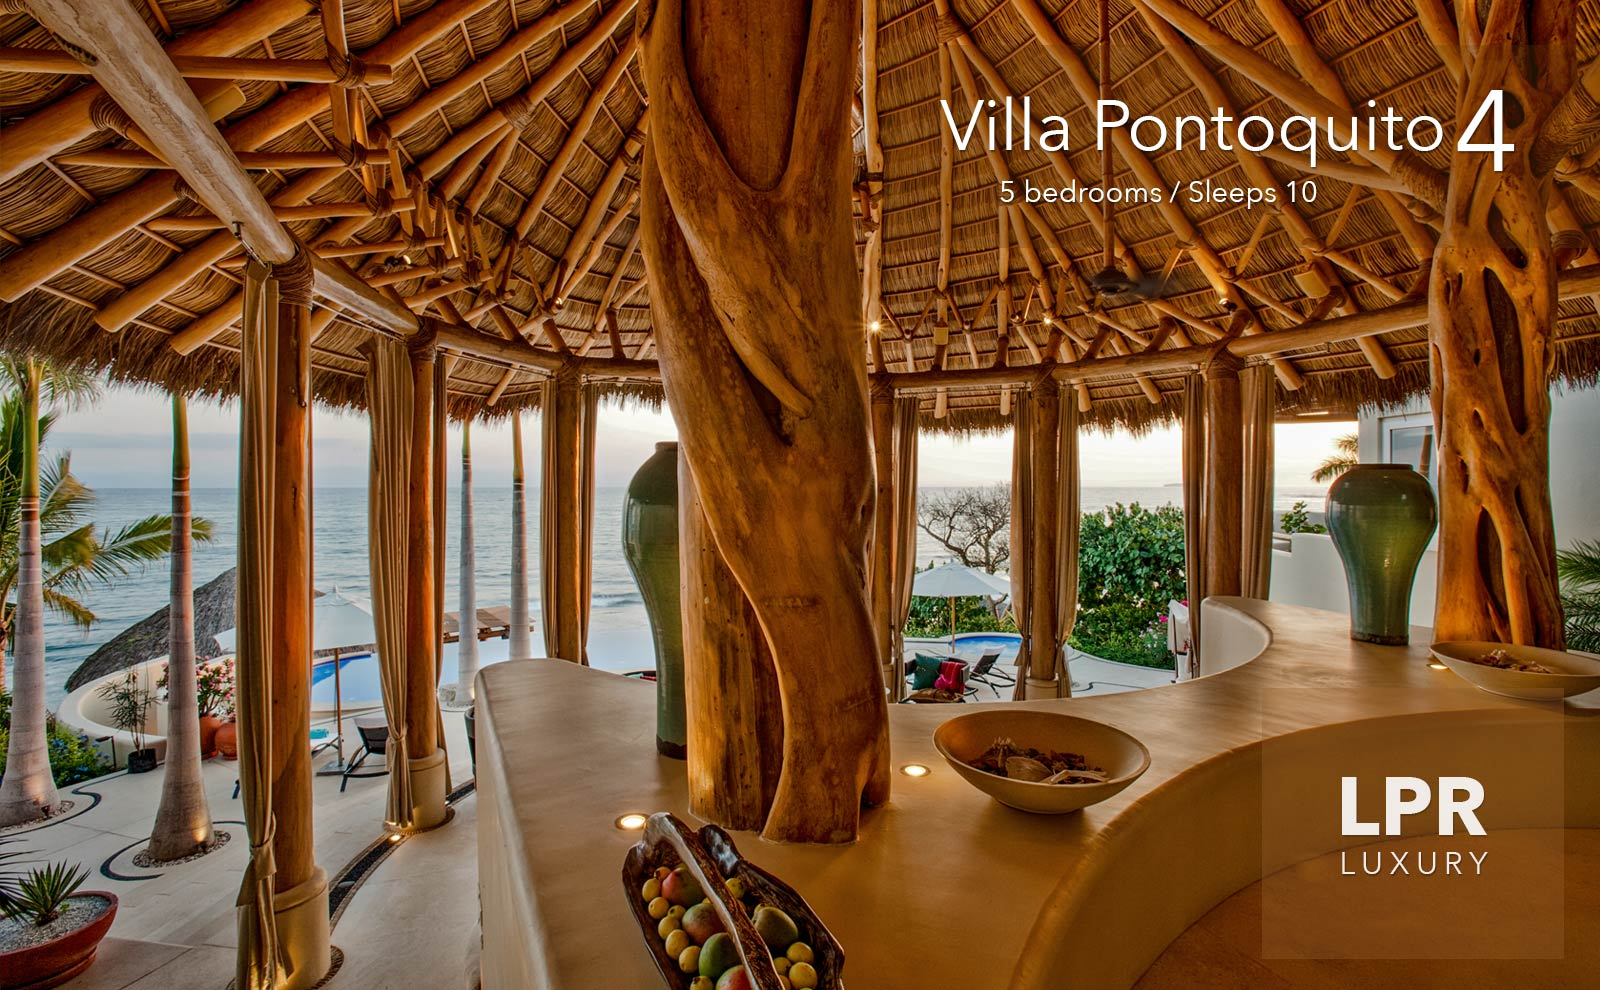 LPR Luxury Open Houses - Punta de Mita - Mexico - Join us this February 1, 2018 from 2 - 6pm